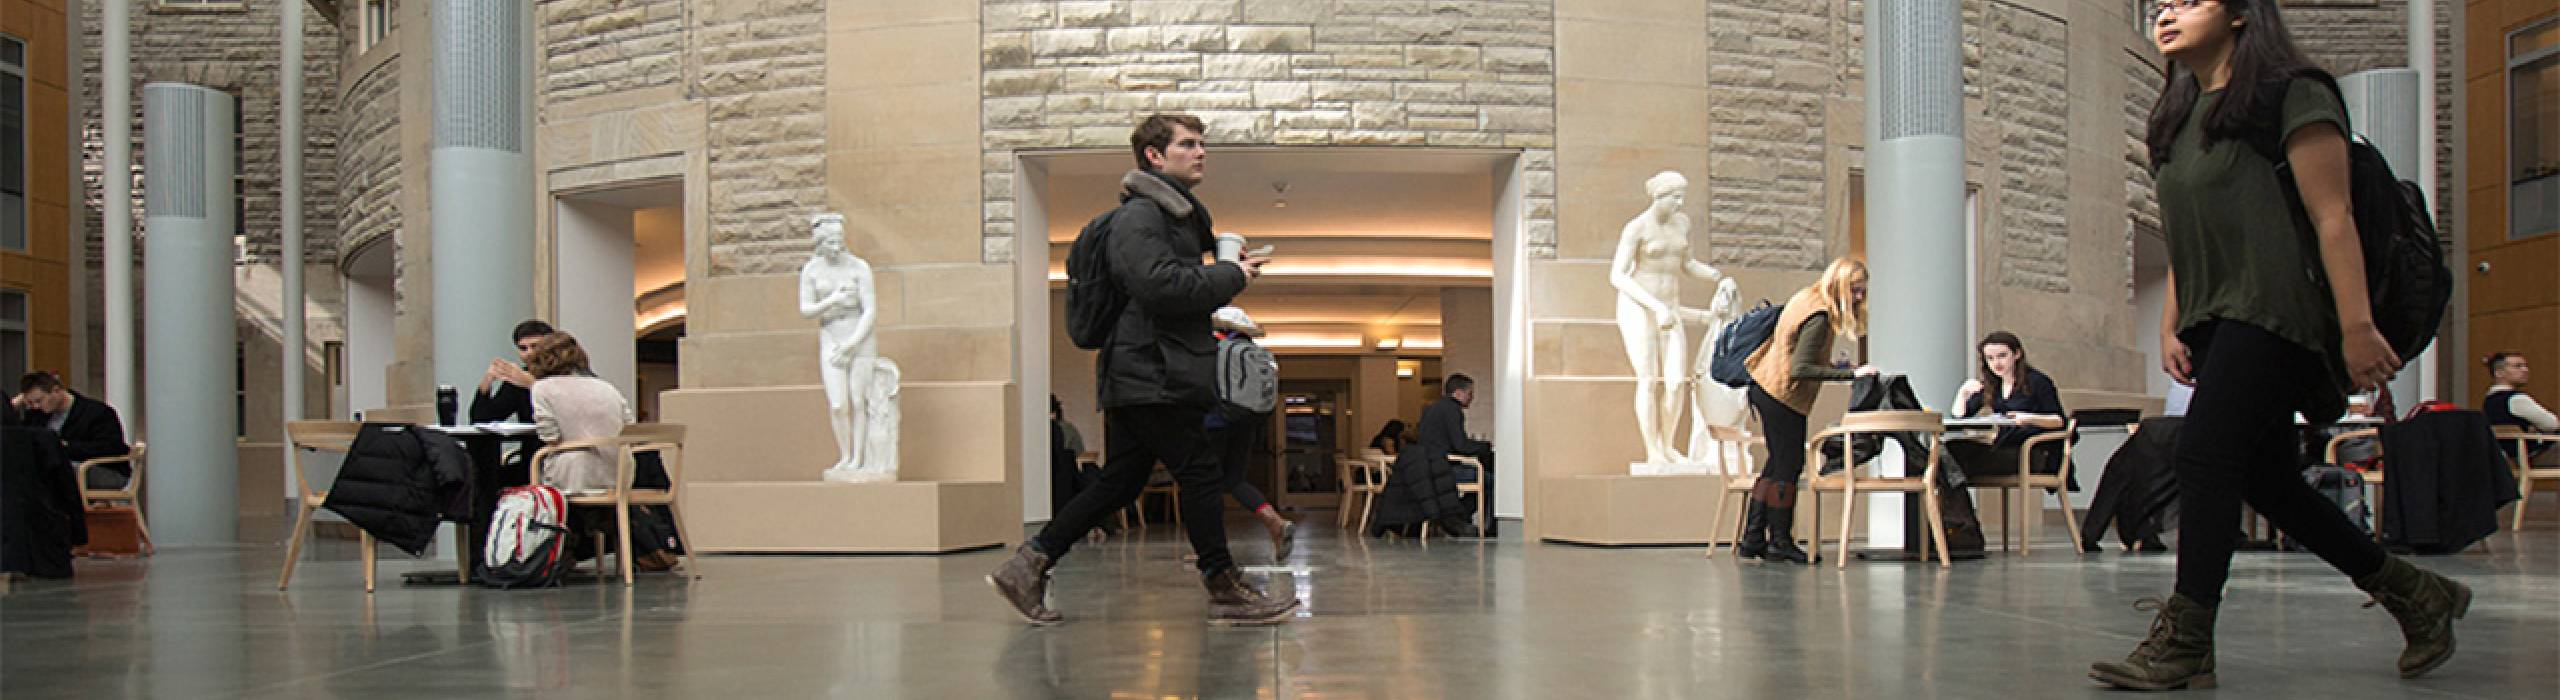 Arts and Sciences (CAS) students walk through the Klarman Hall atrium.